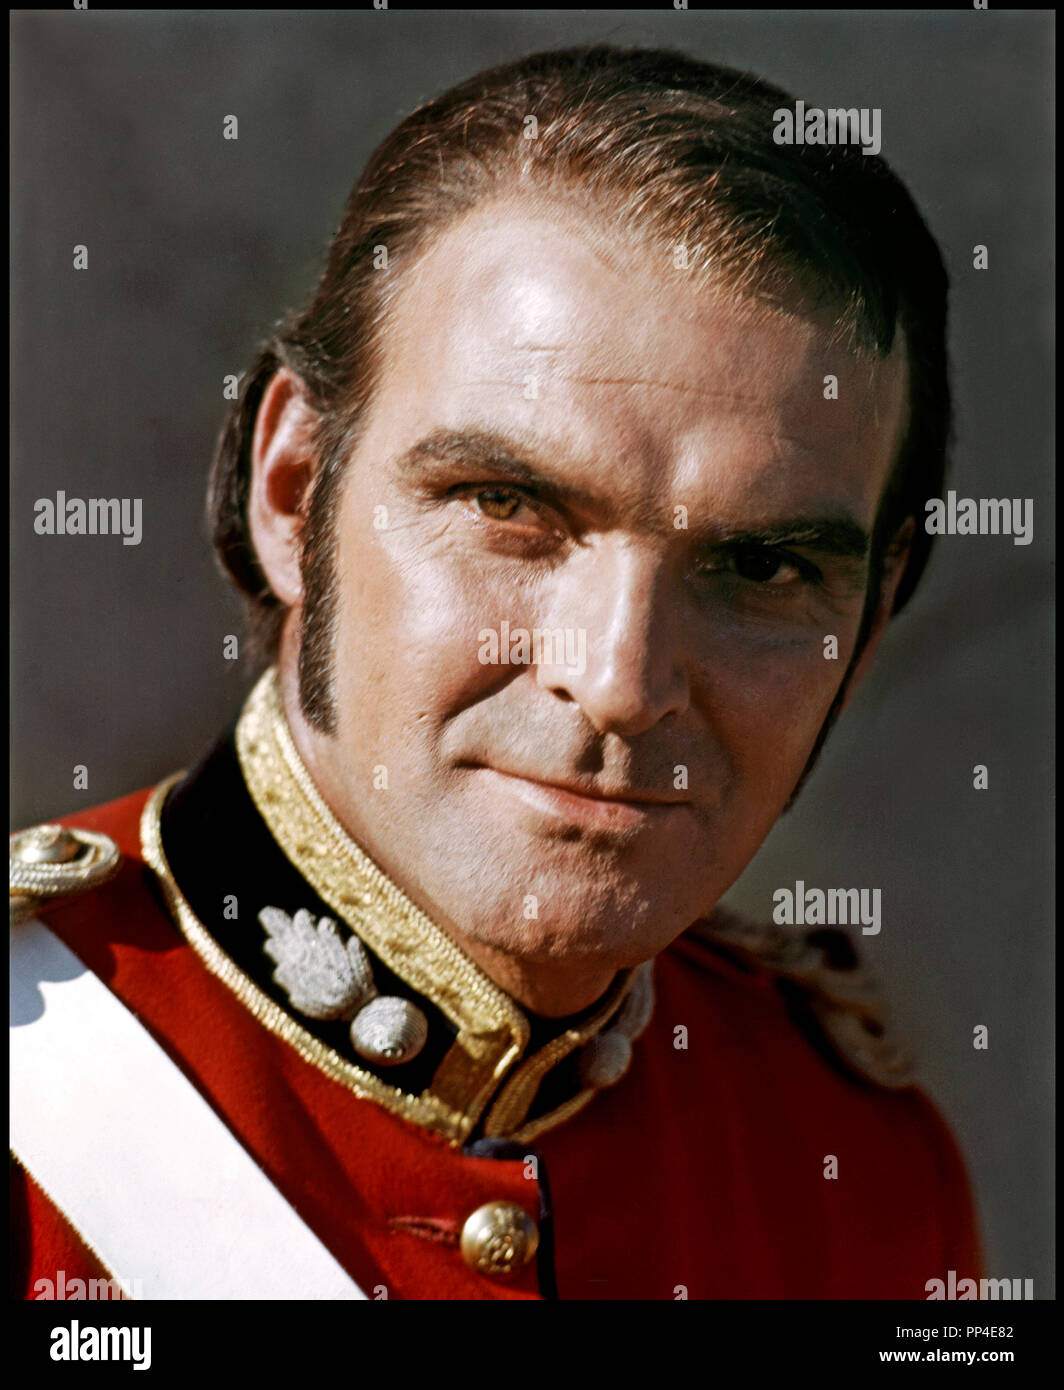 Prod DB © Diamond Films / DR ZOULOU (ZULU) de Cy Endfield avec Stanley Baker 1964 Go direction militaire anglais, britanique, Photo Stock